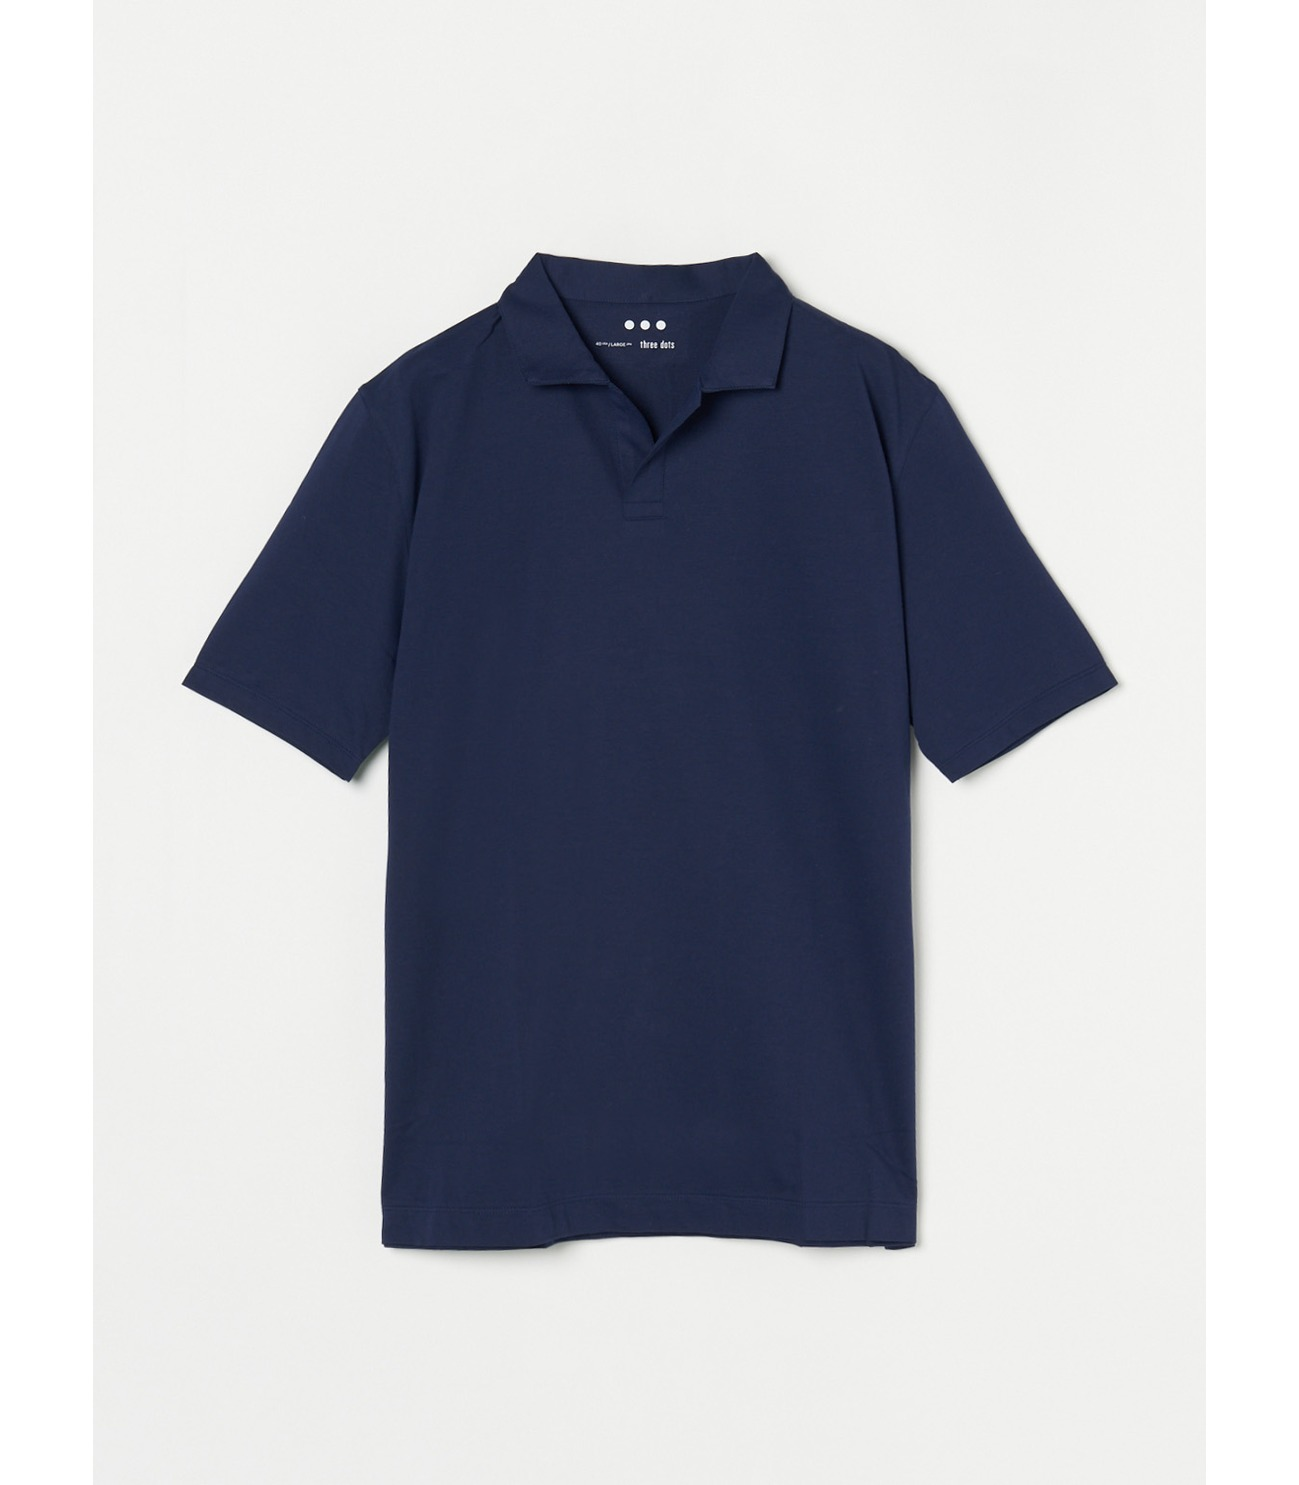 Men's powdery cotton skipper polo 詳細画像 night iris 1